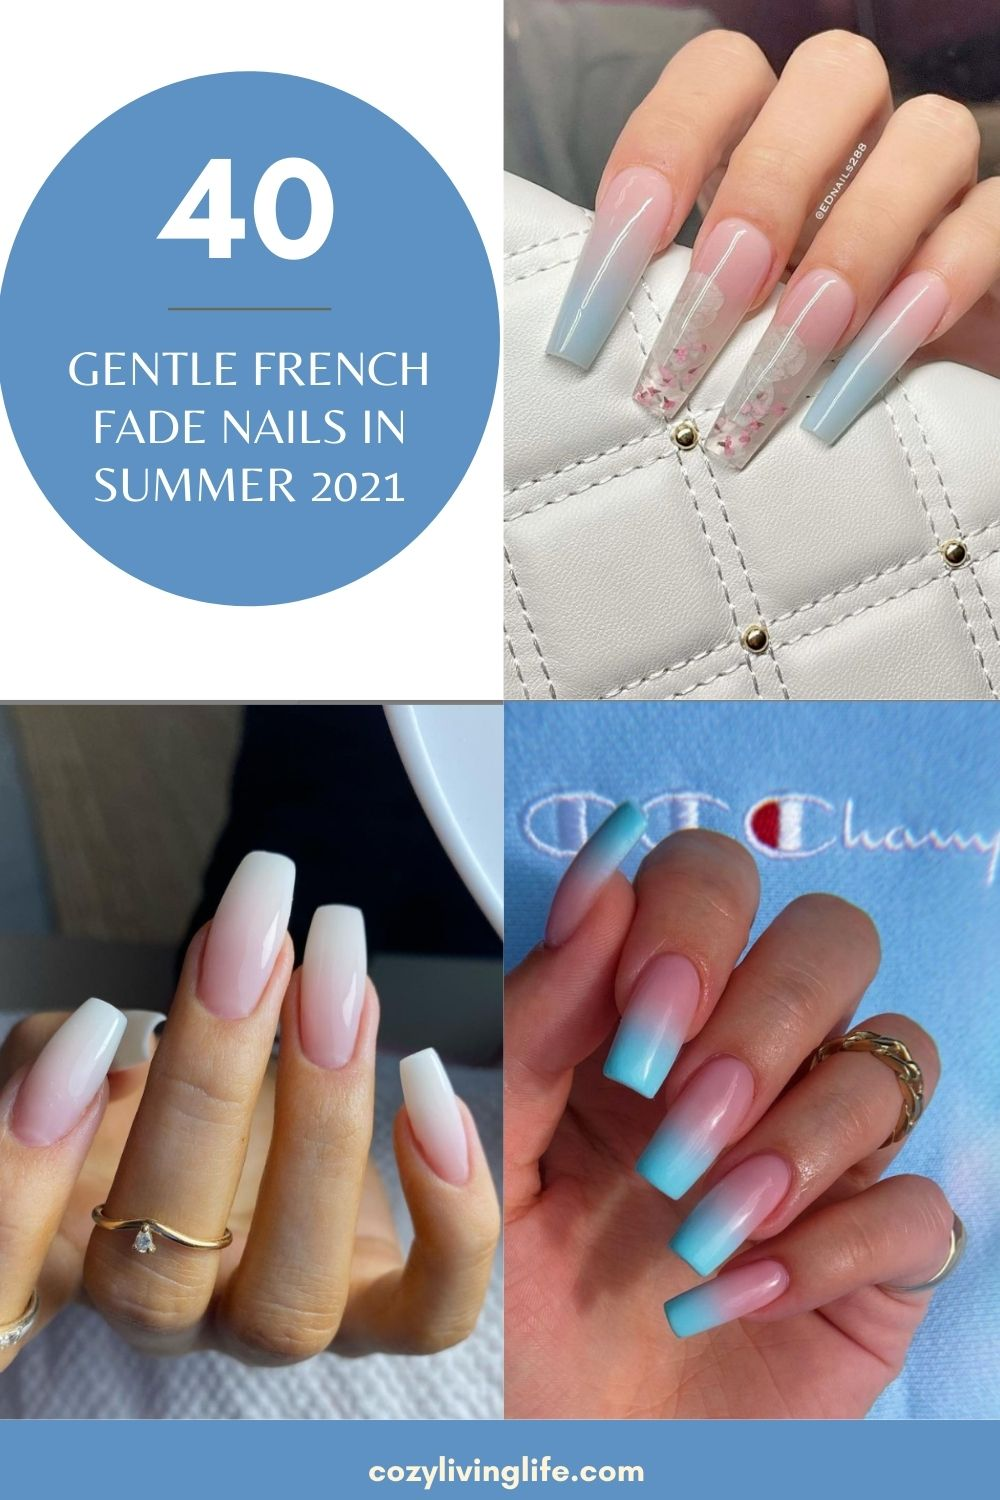 Elegant French Fade Nails To Copy For Occasion!